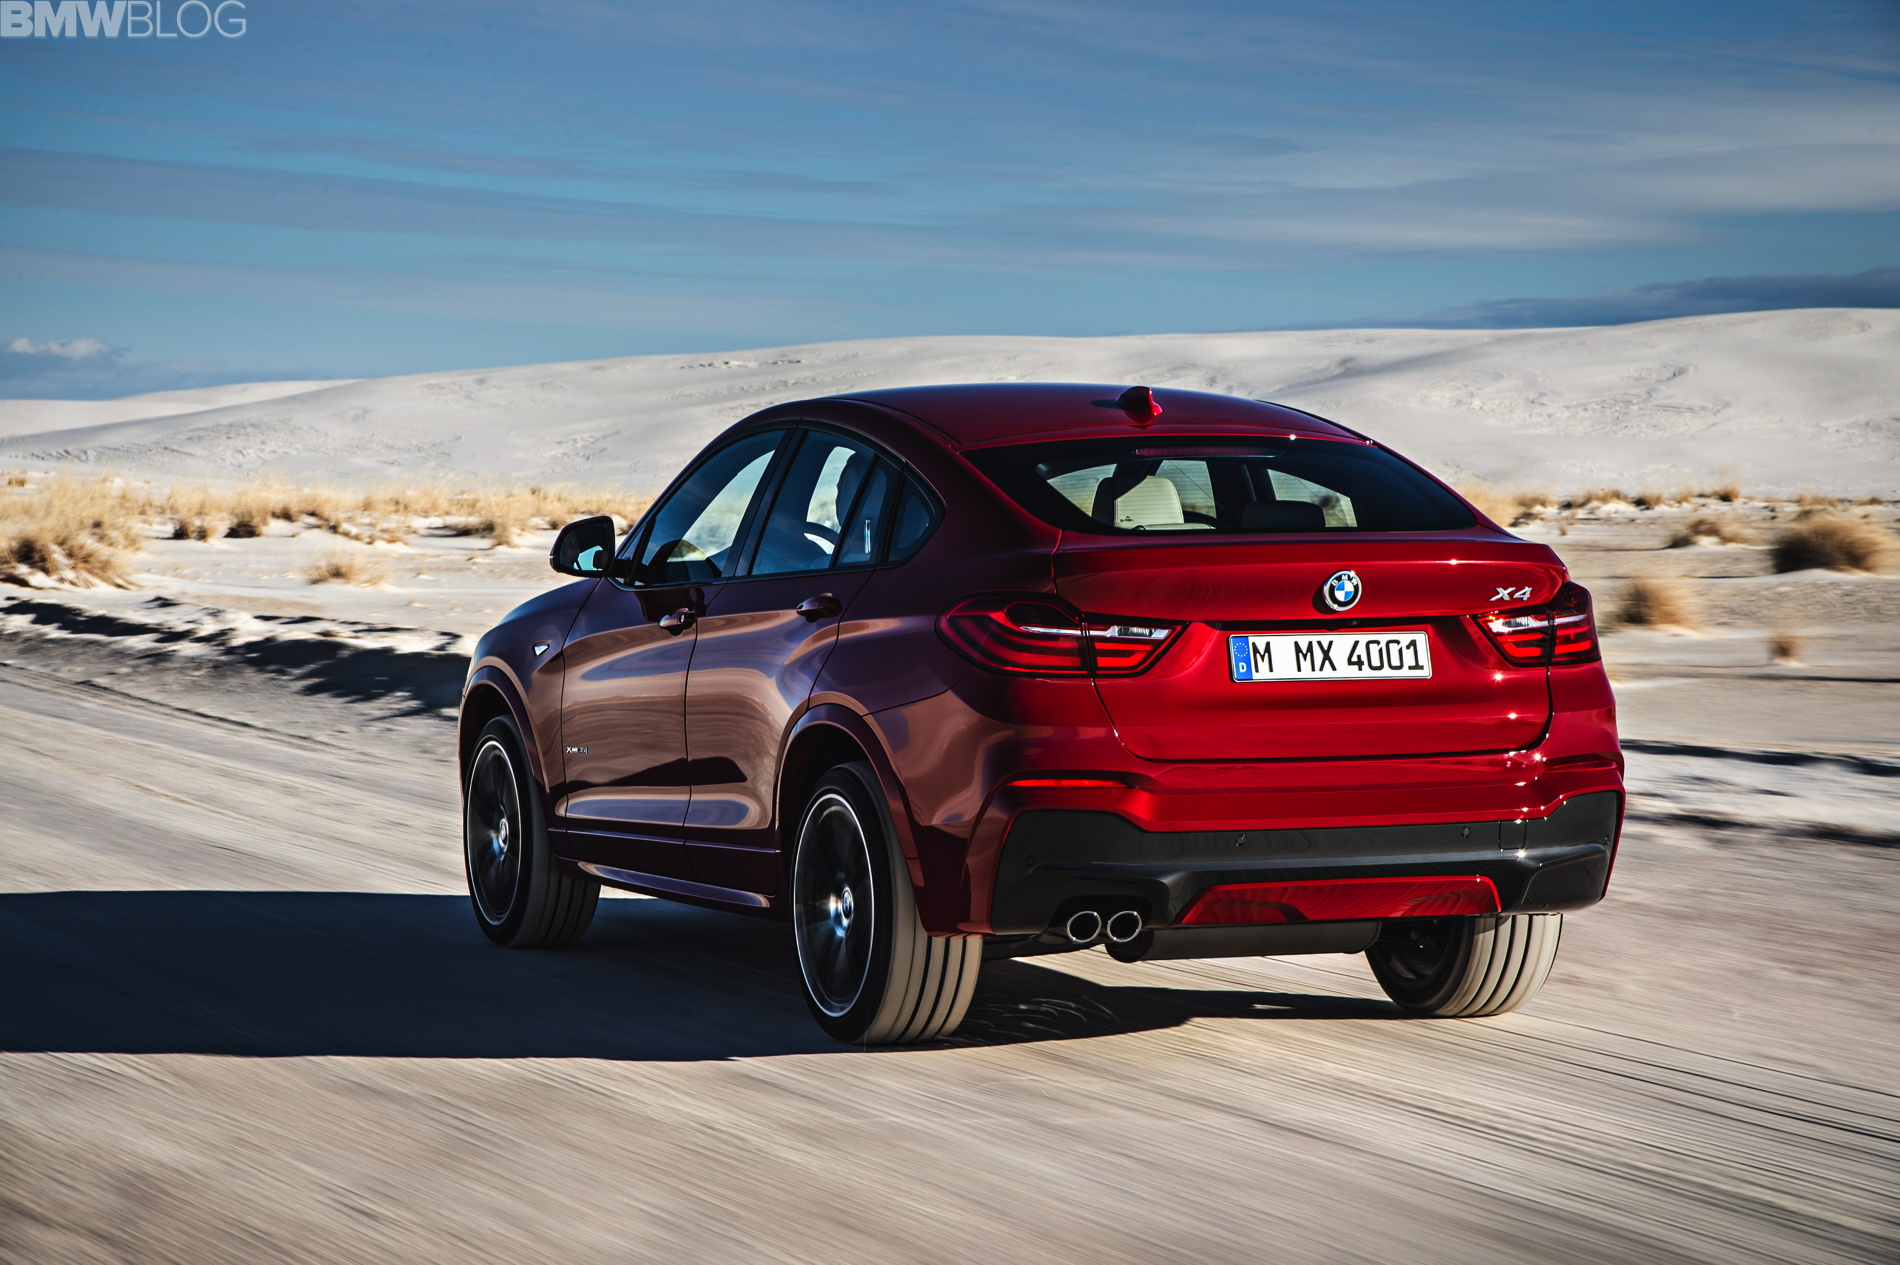 new bmw x4 images 44